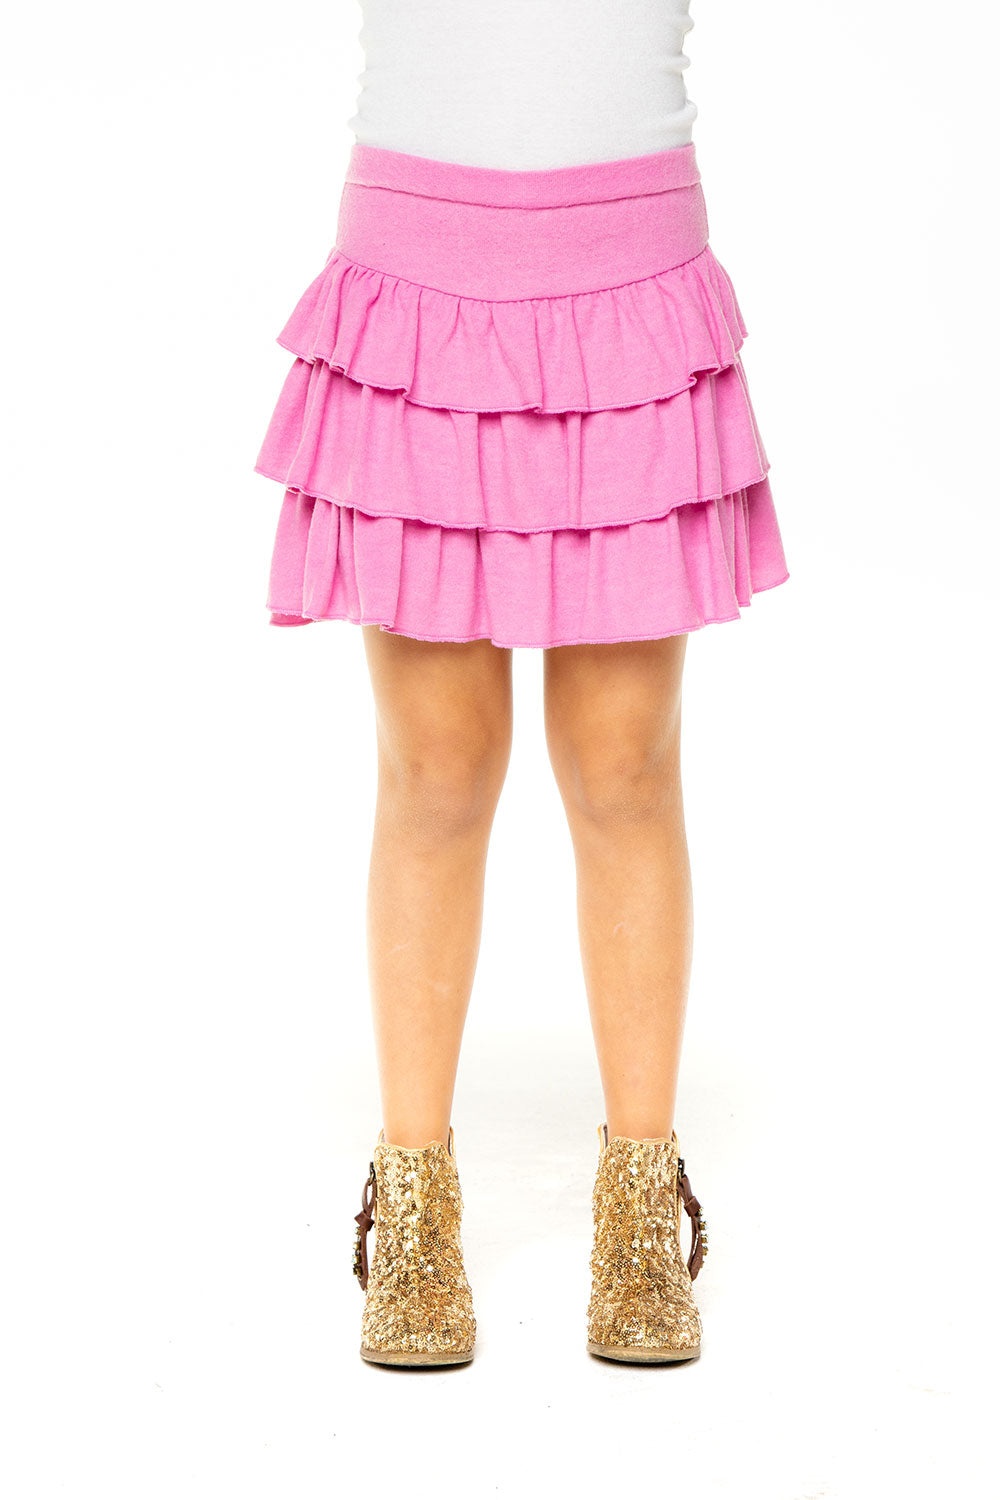 Girls Love Knit Tiered Ruffle Skort RECYCLED chaserbrand4.myshopify.com